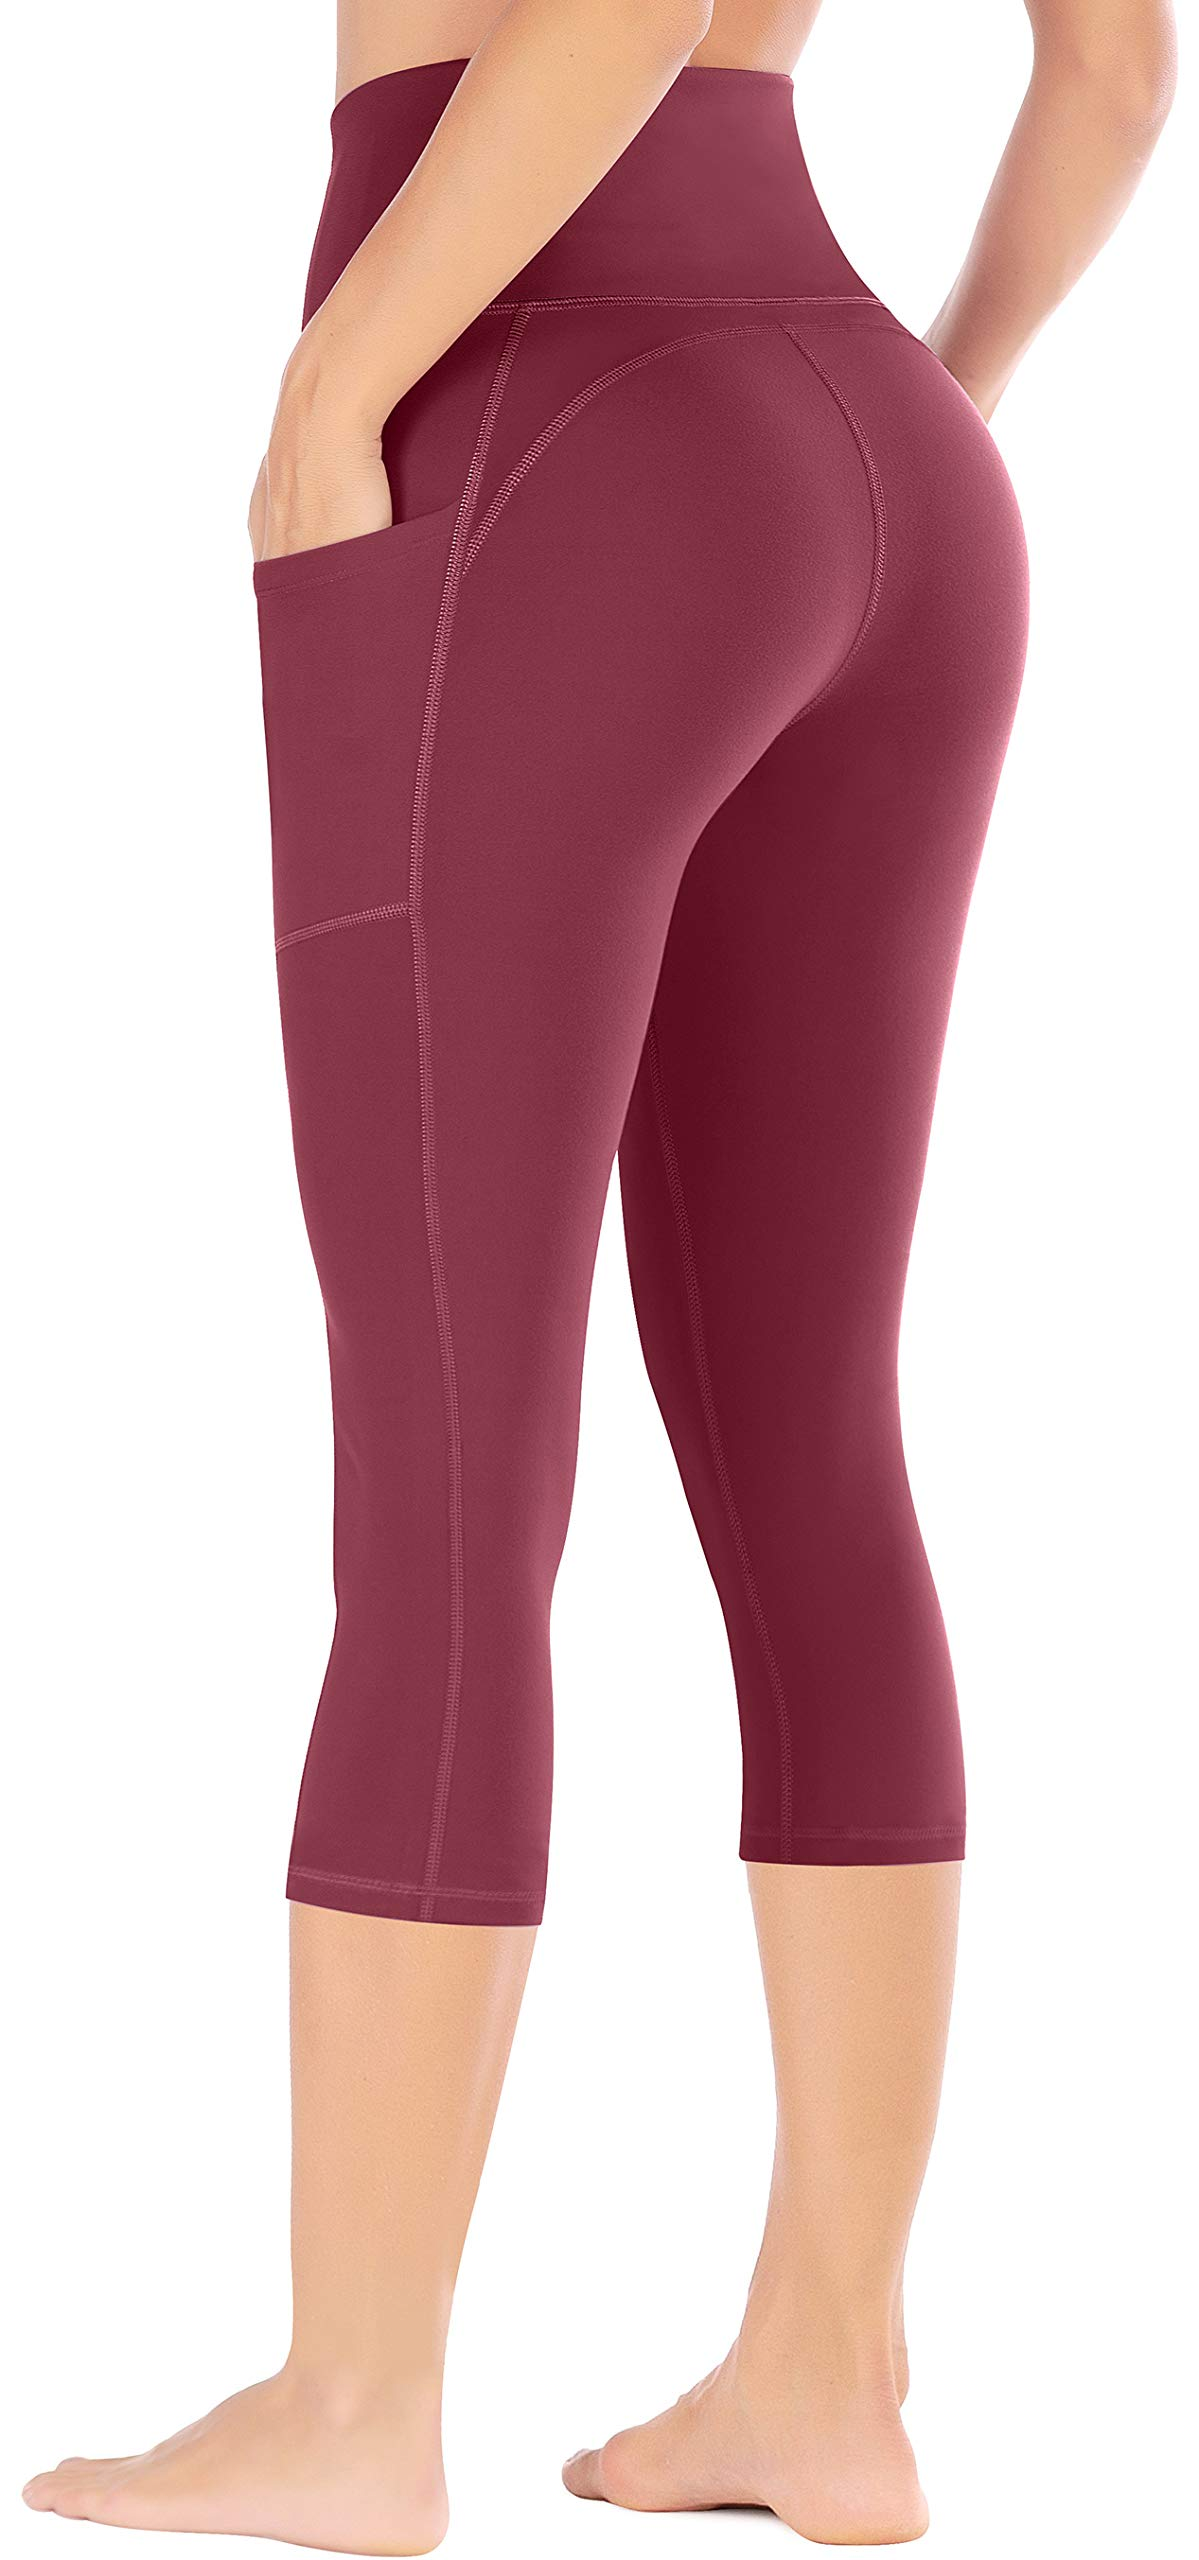 Ewedoos Yoga Pants with Pockets for Women Ultra Soft Leggings with Pockets High Waist Workout Pants (Ew327 Maroon, XX-Large) by Ewedoos